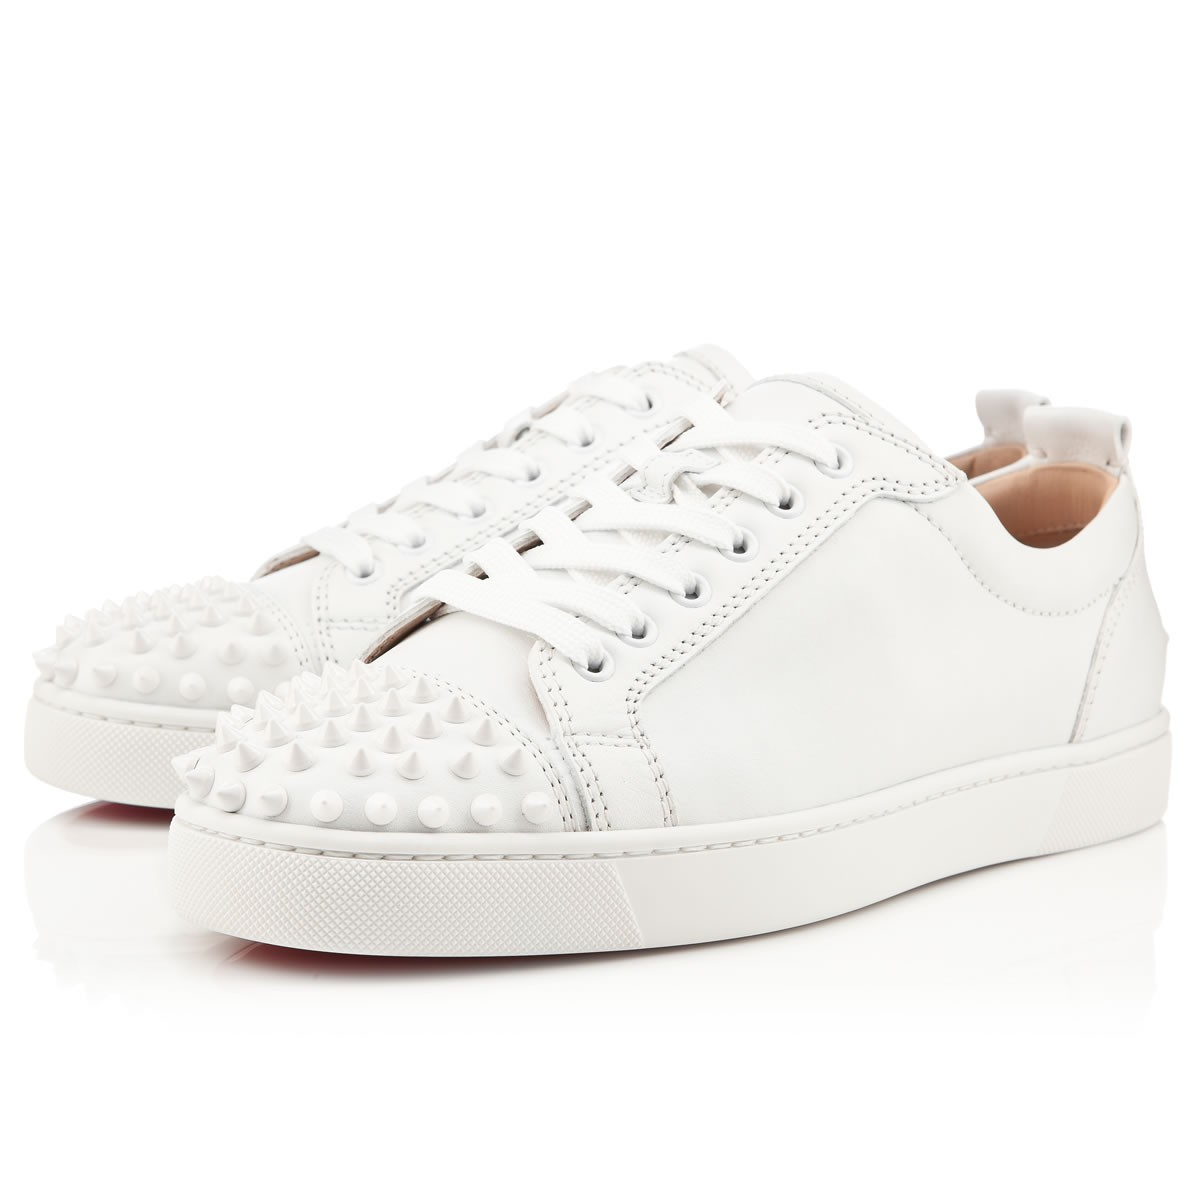 christian louboutin spiked beige